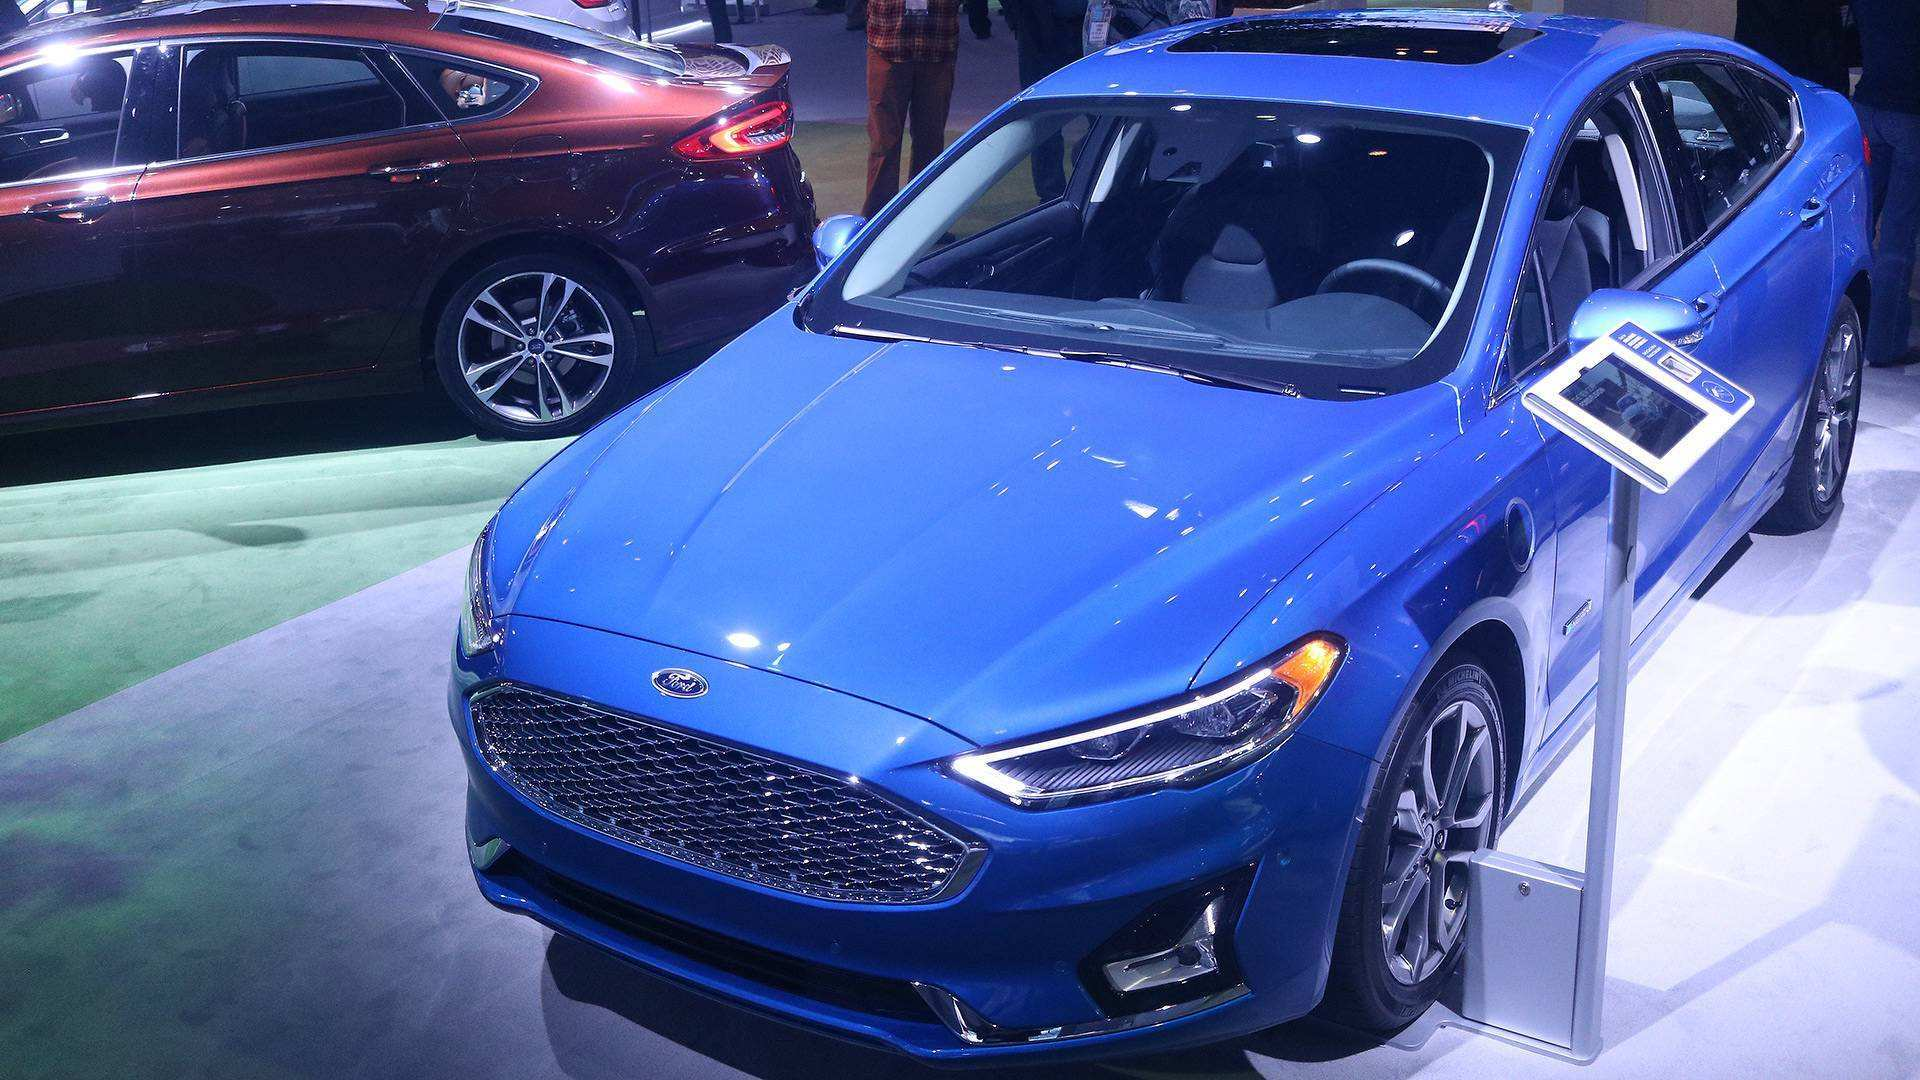 70 The Best 2020 Ford Fusion Energi Review and Release date